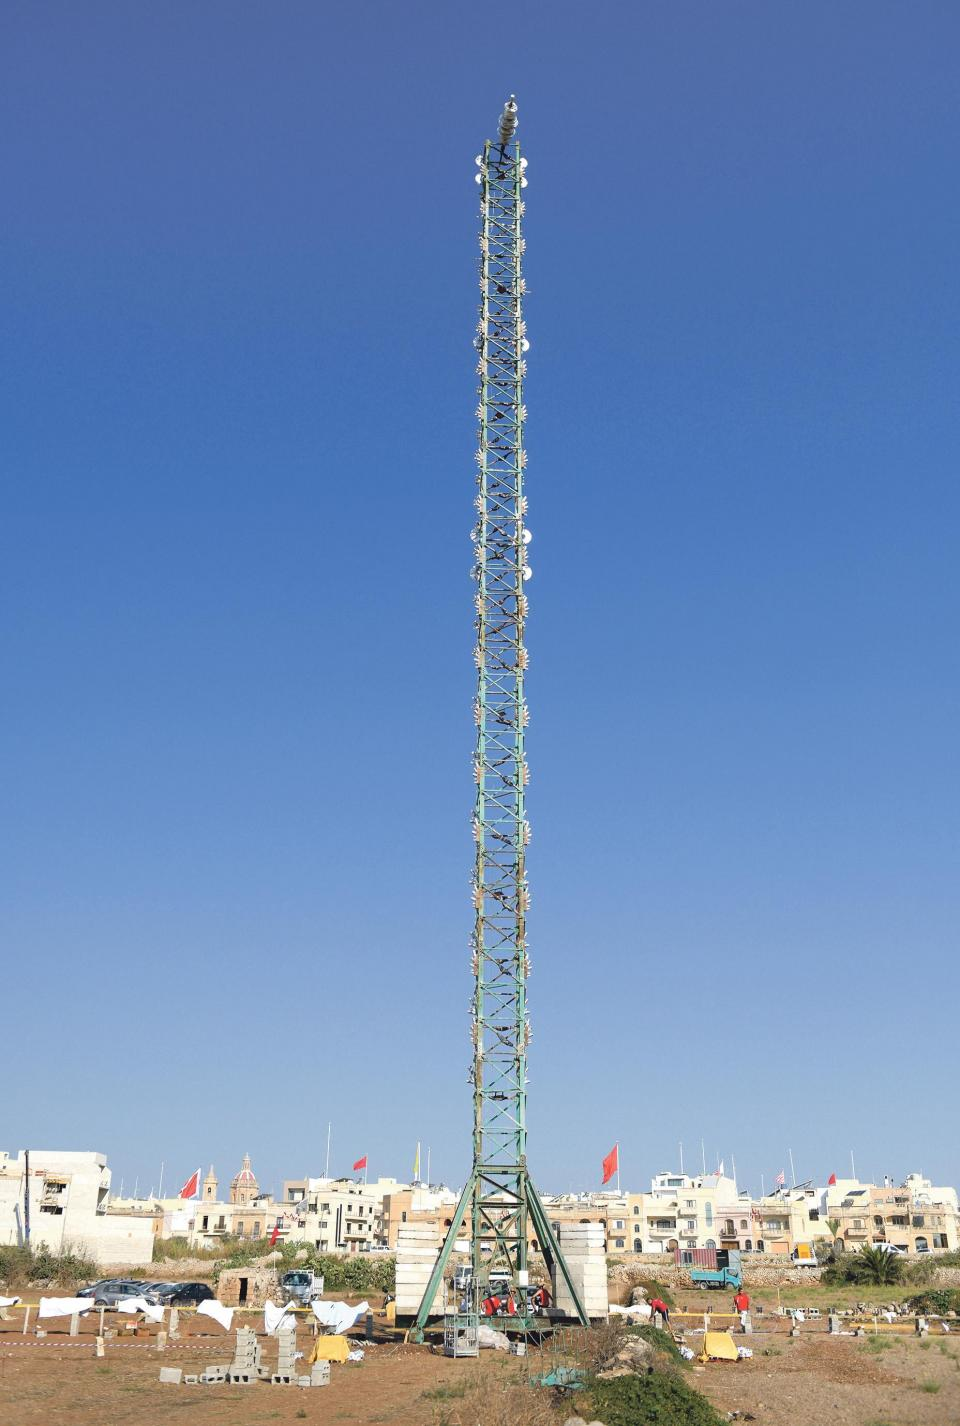 Taking centre stage is a 57-metre tower with 6,000 fireworks shots rigged to it.